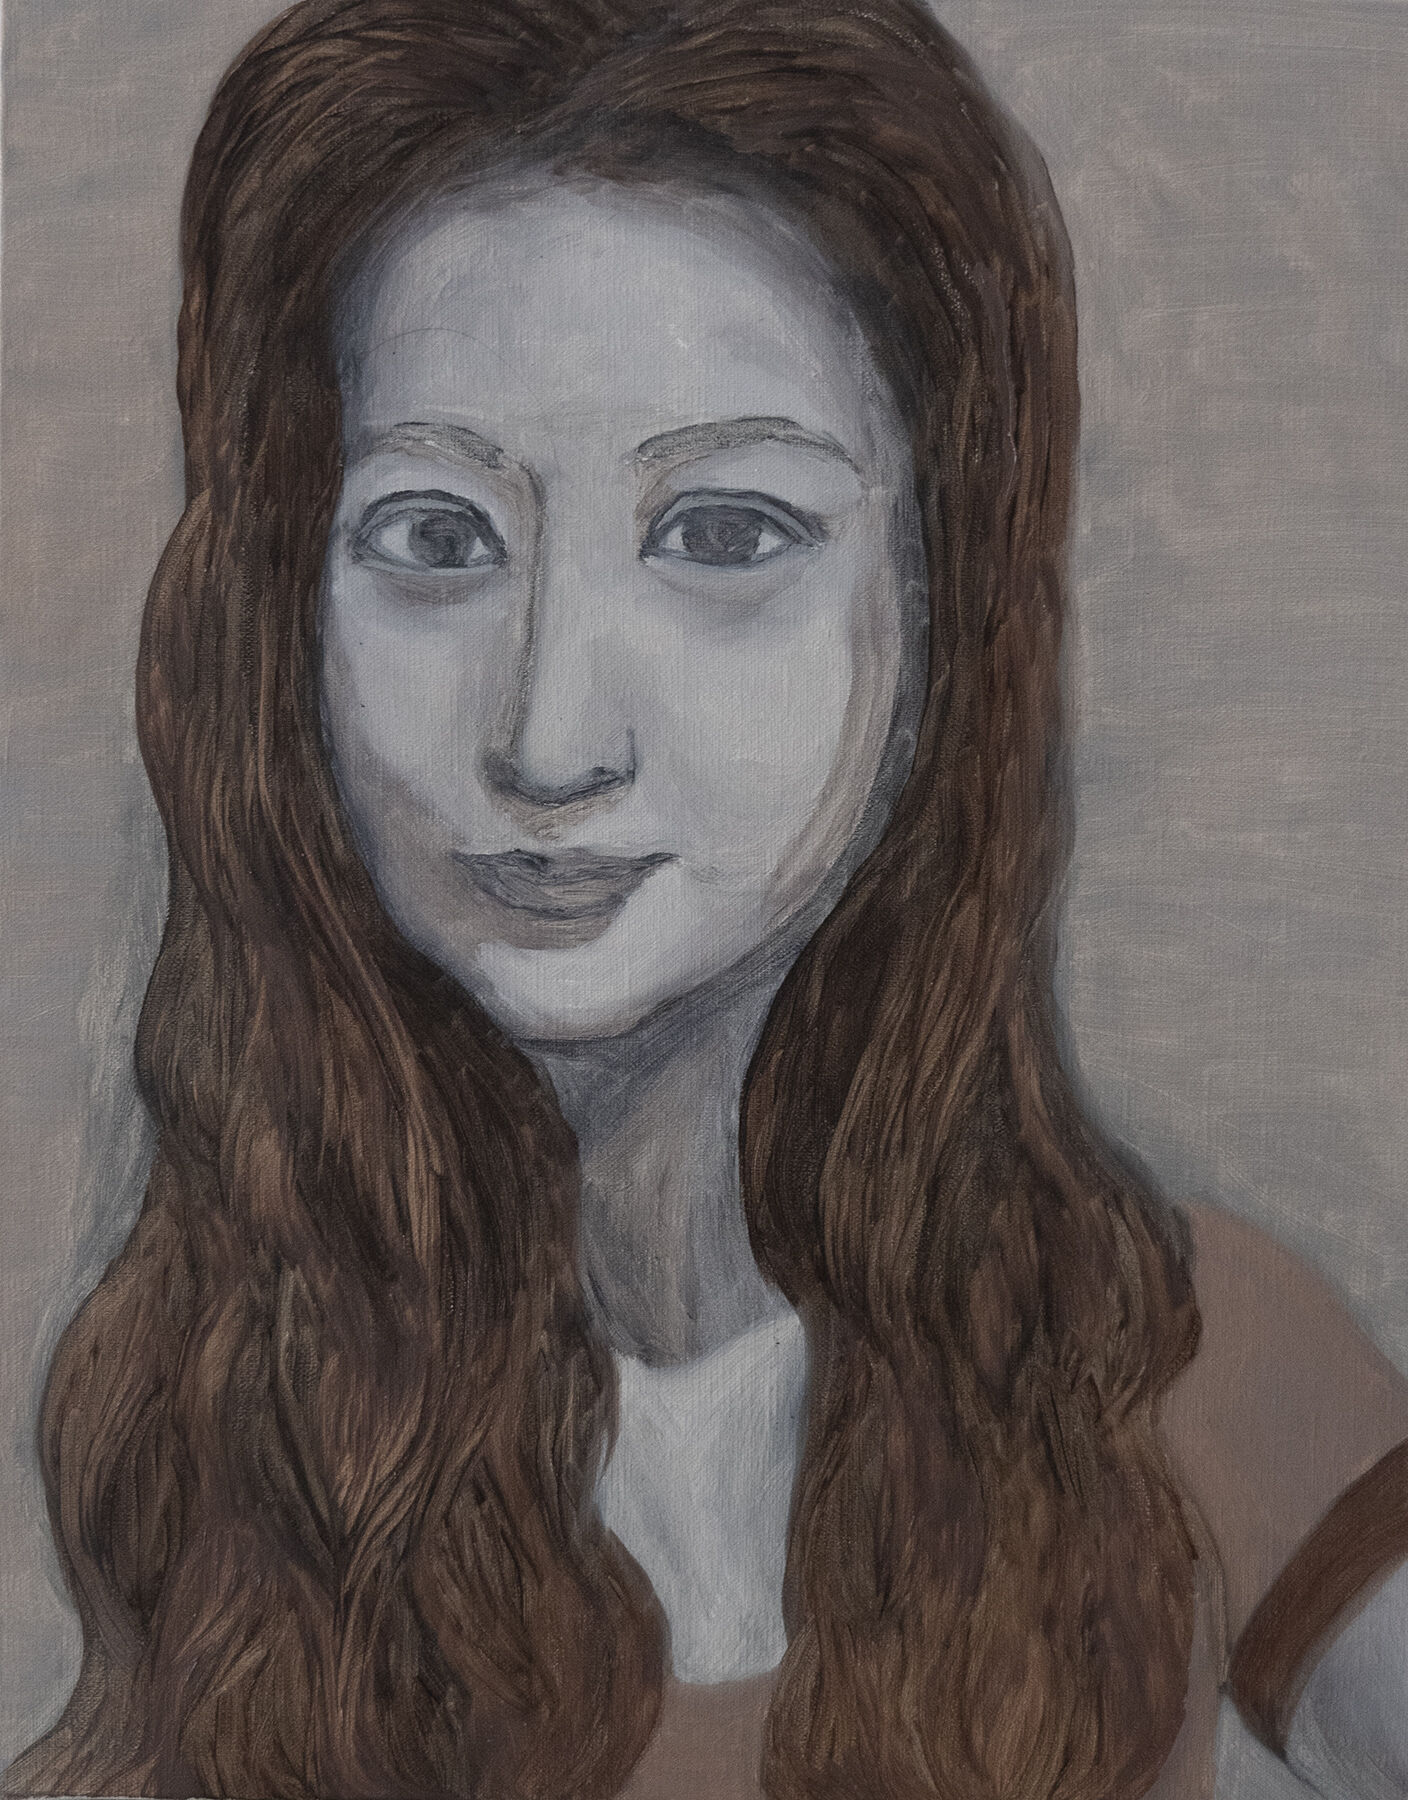 In the lockdown period, Lihong started her first self portrait painting.